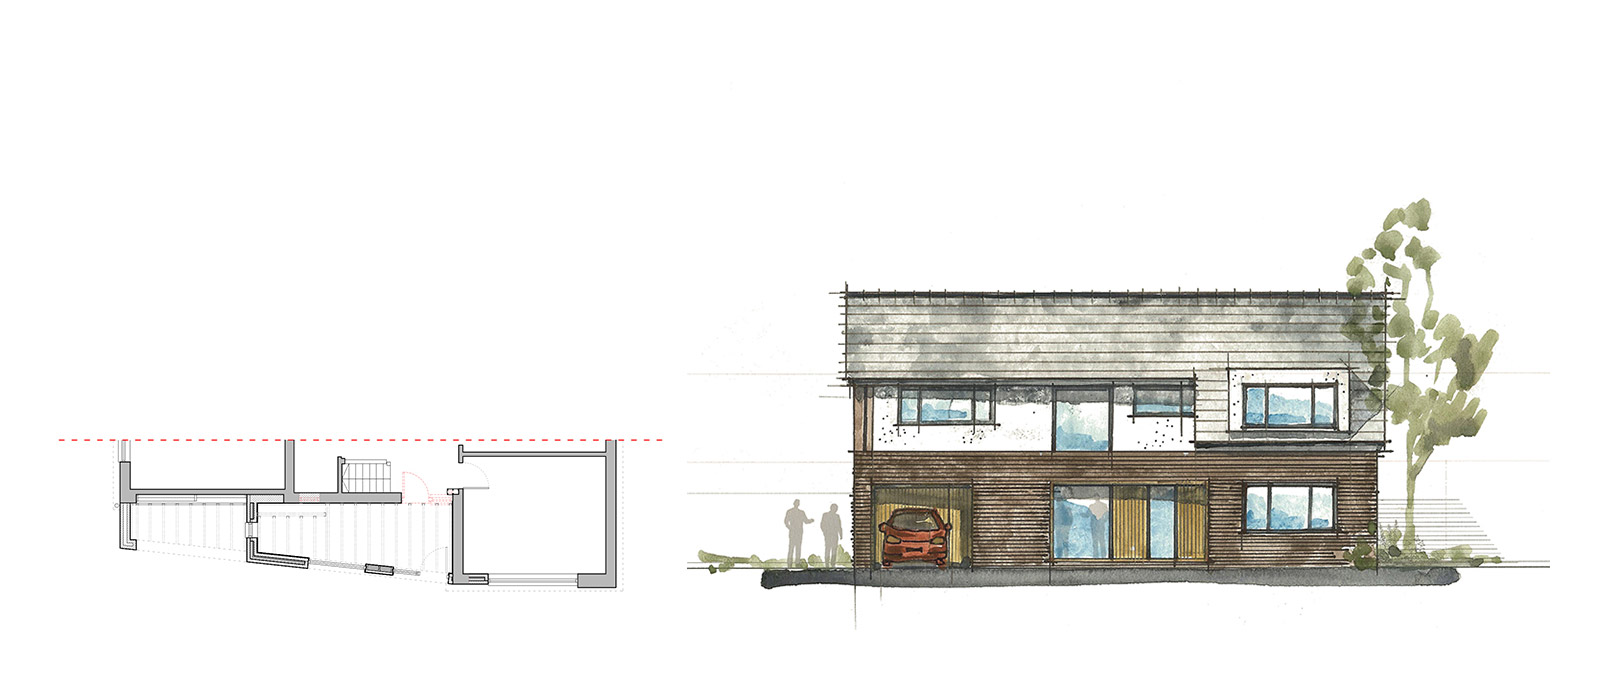 gyd architecture | sketches at concept stage